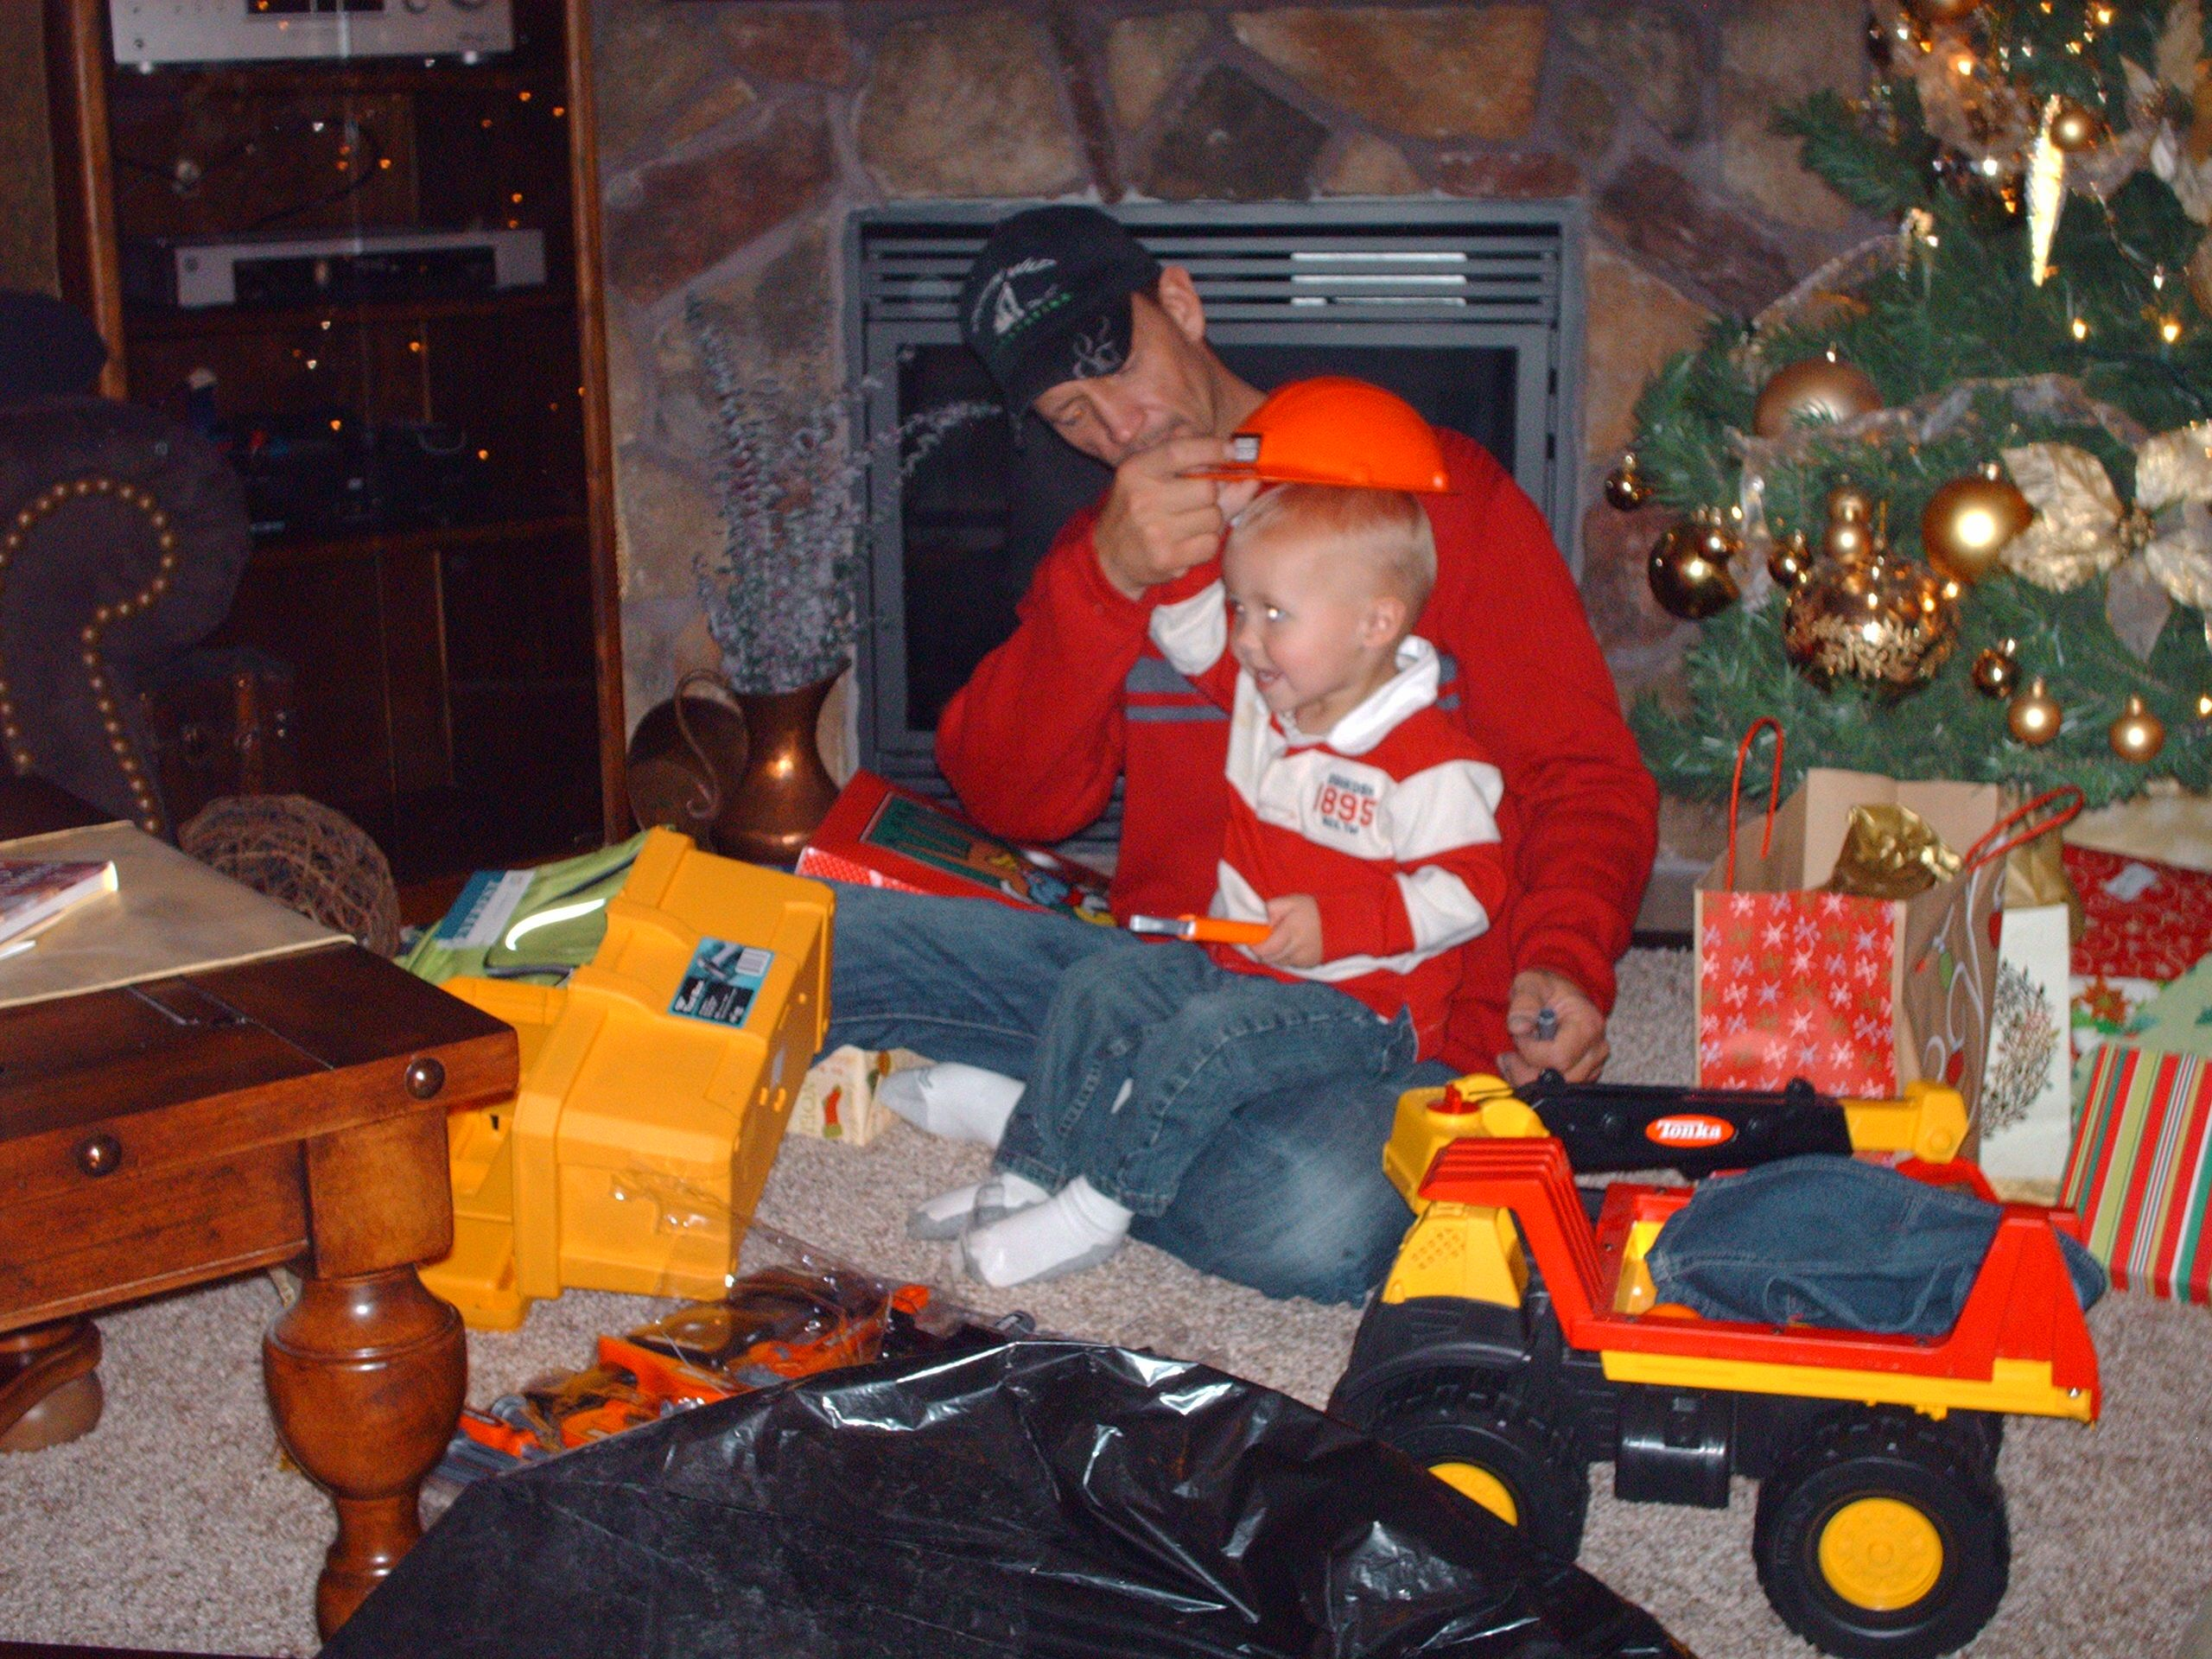 Exceptional Christmas Gift Exchange Ideas Family Part - 11: Family Christmas Gift Exchange Ideas